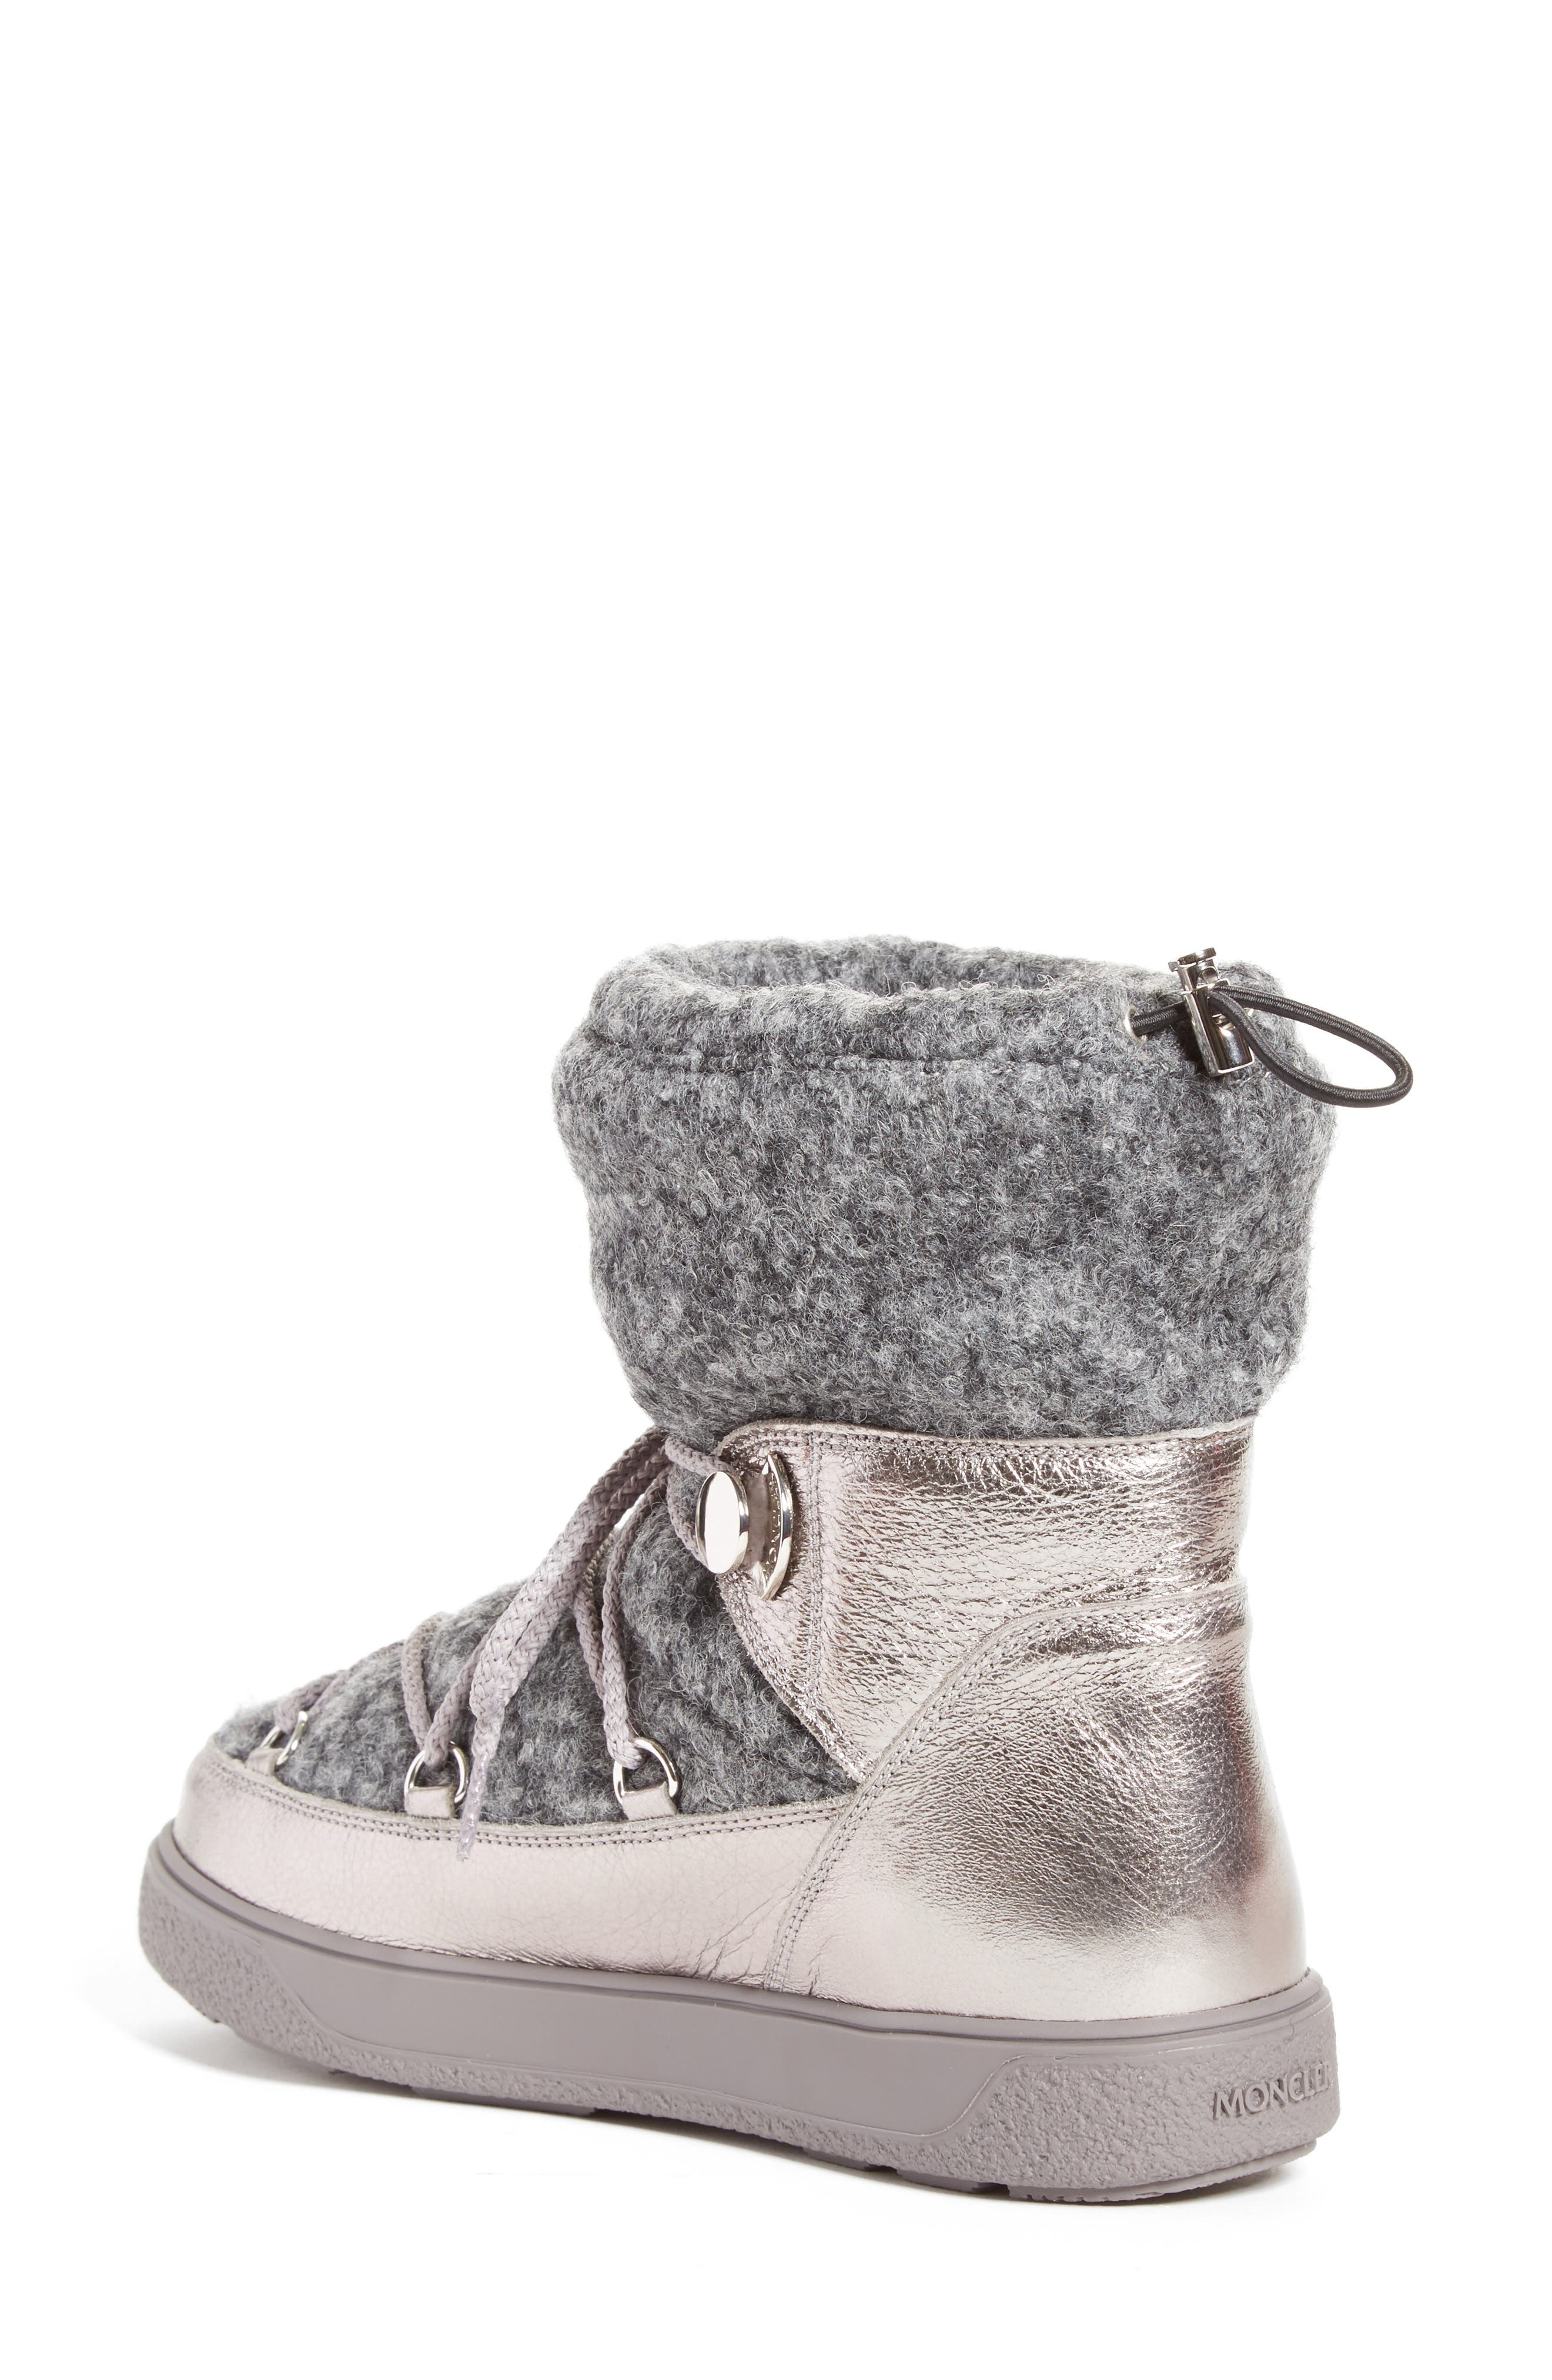 Ynnaf Boiled Wool Lined Snow Boot,                             Alternate thumbnail 2, color,                             045